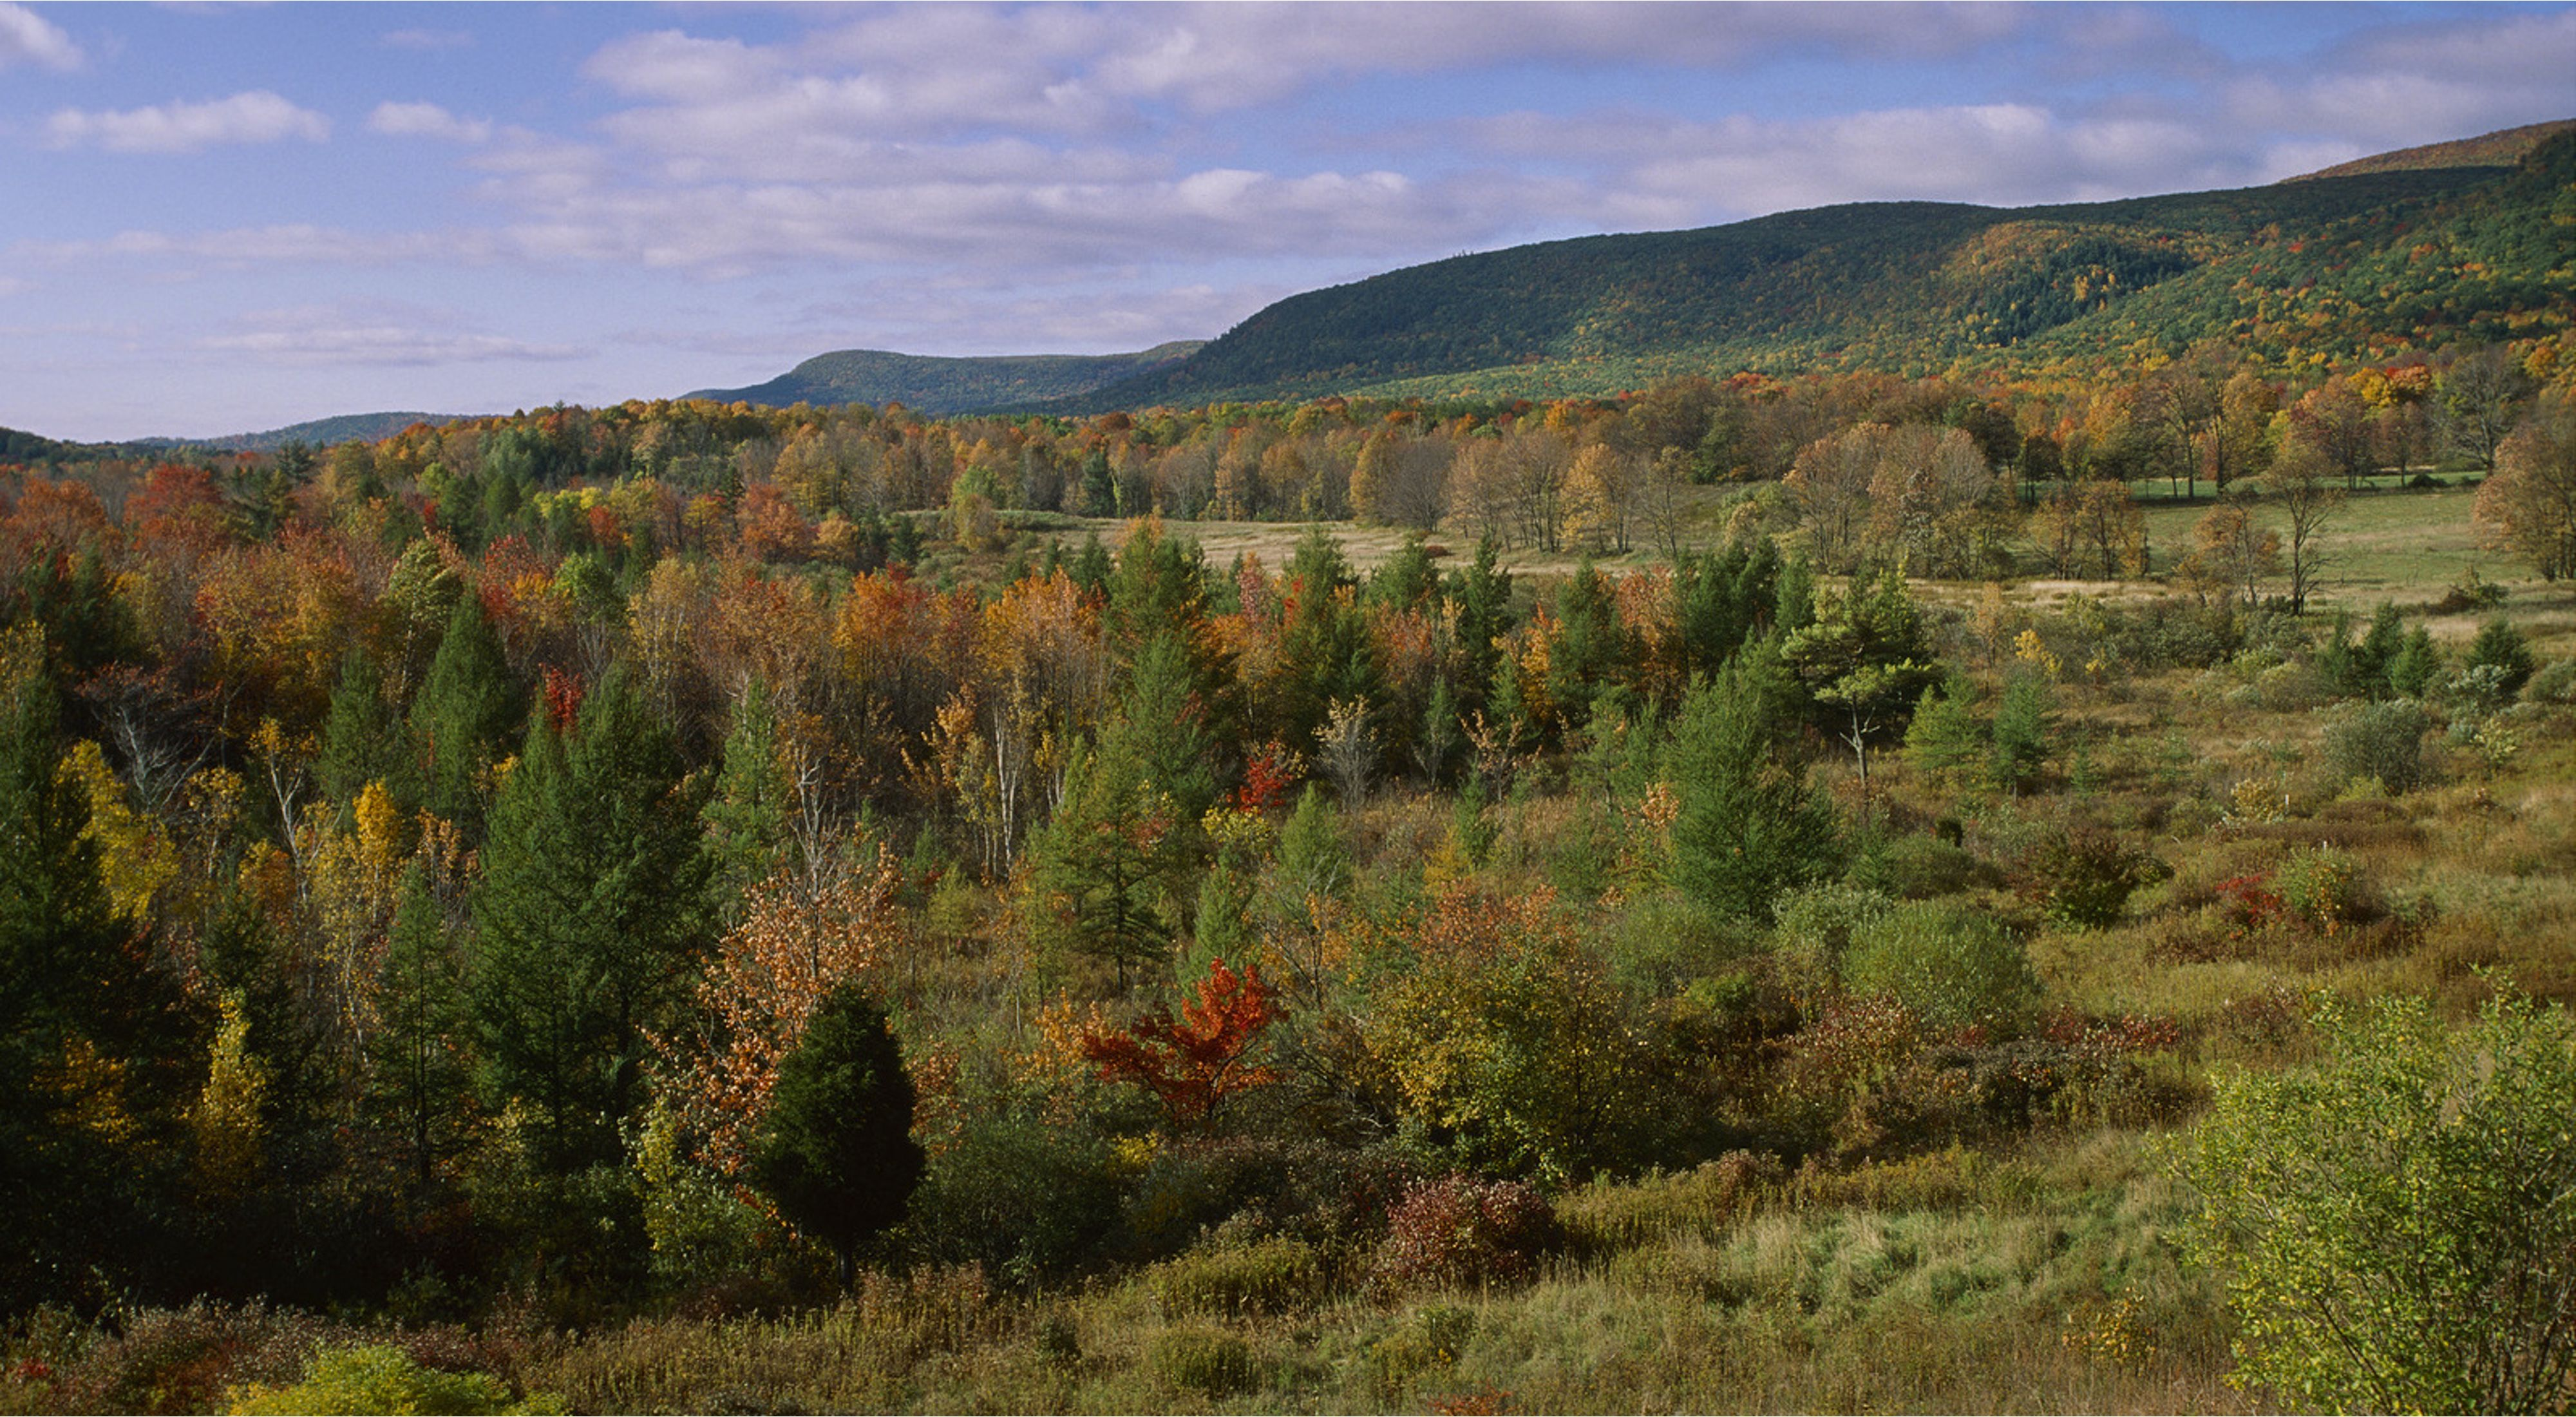 Rolling hills covered in green, yellow and orange-leaved trees with mountains in the background.